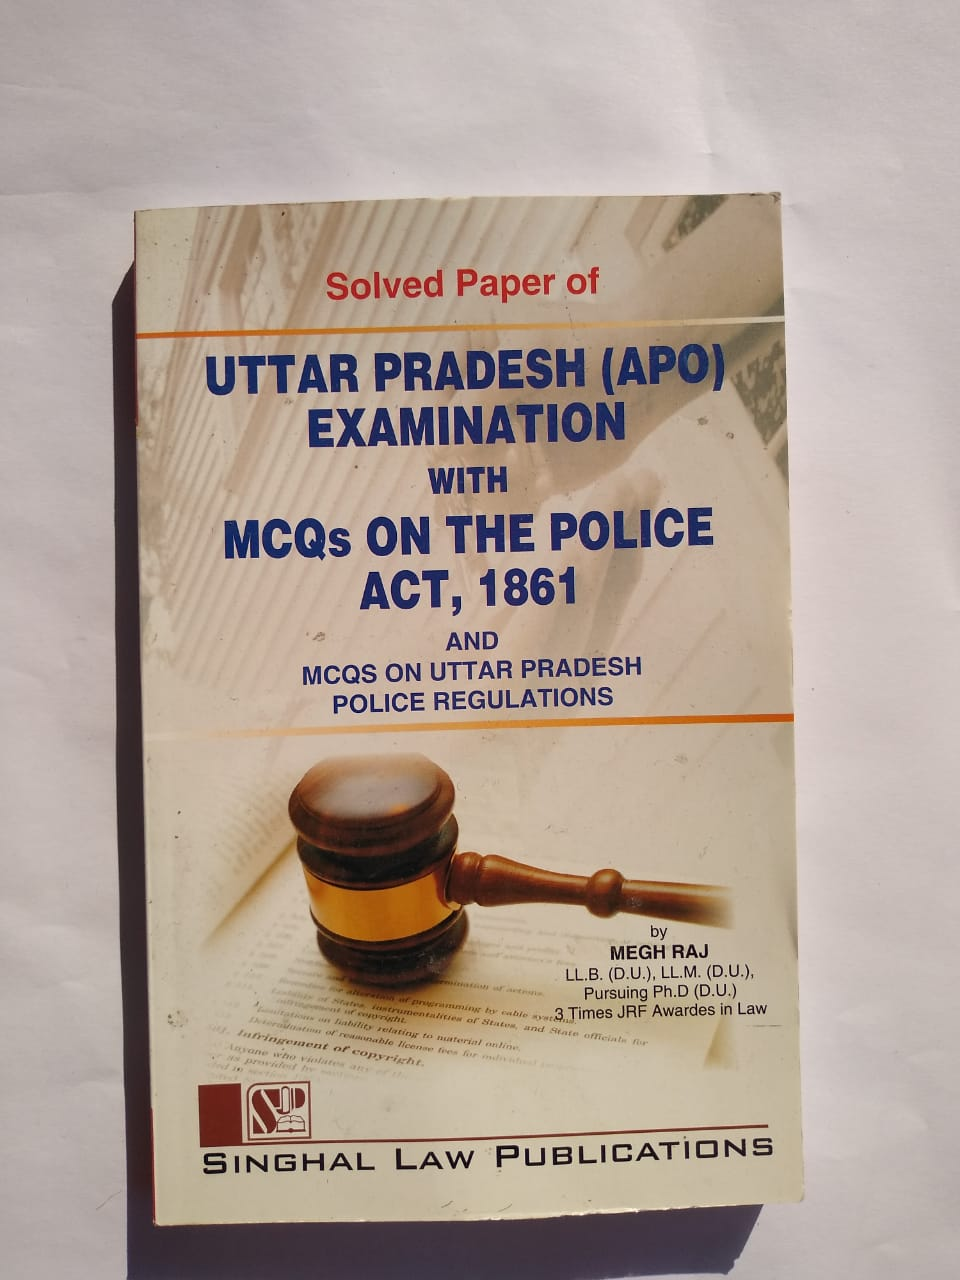 Singhal's Solved Paper Of Uttar Pradesh (APO) Examination With MCQs On The Police AcT,1861 And MCQs On Uttar Pradesh Police Regulations